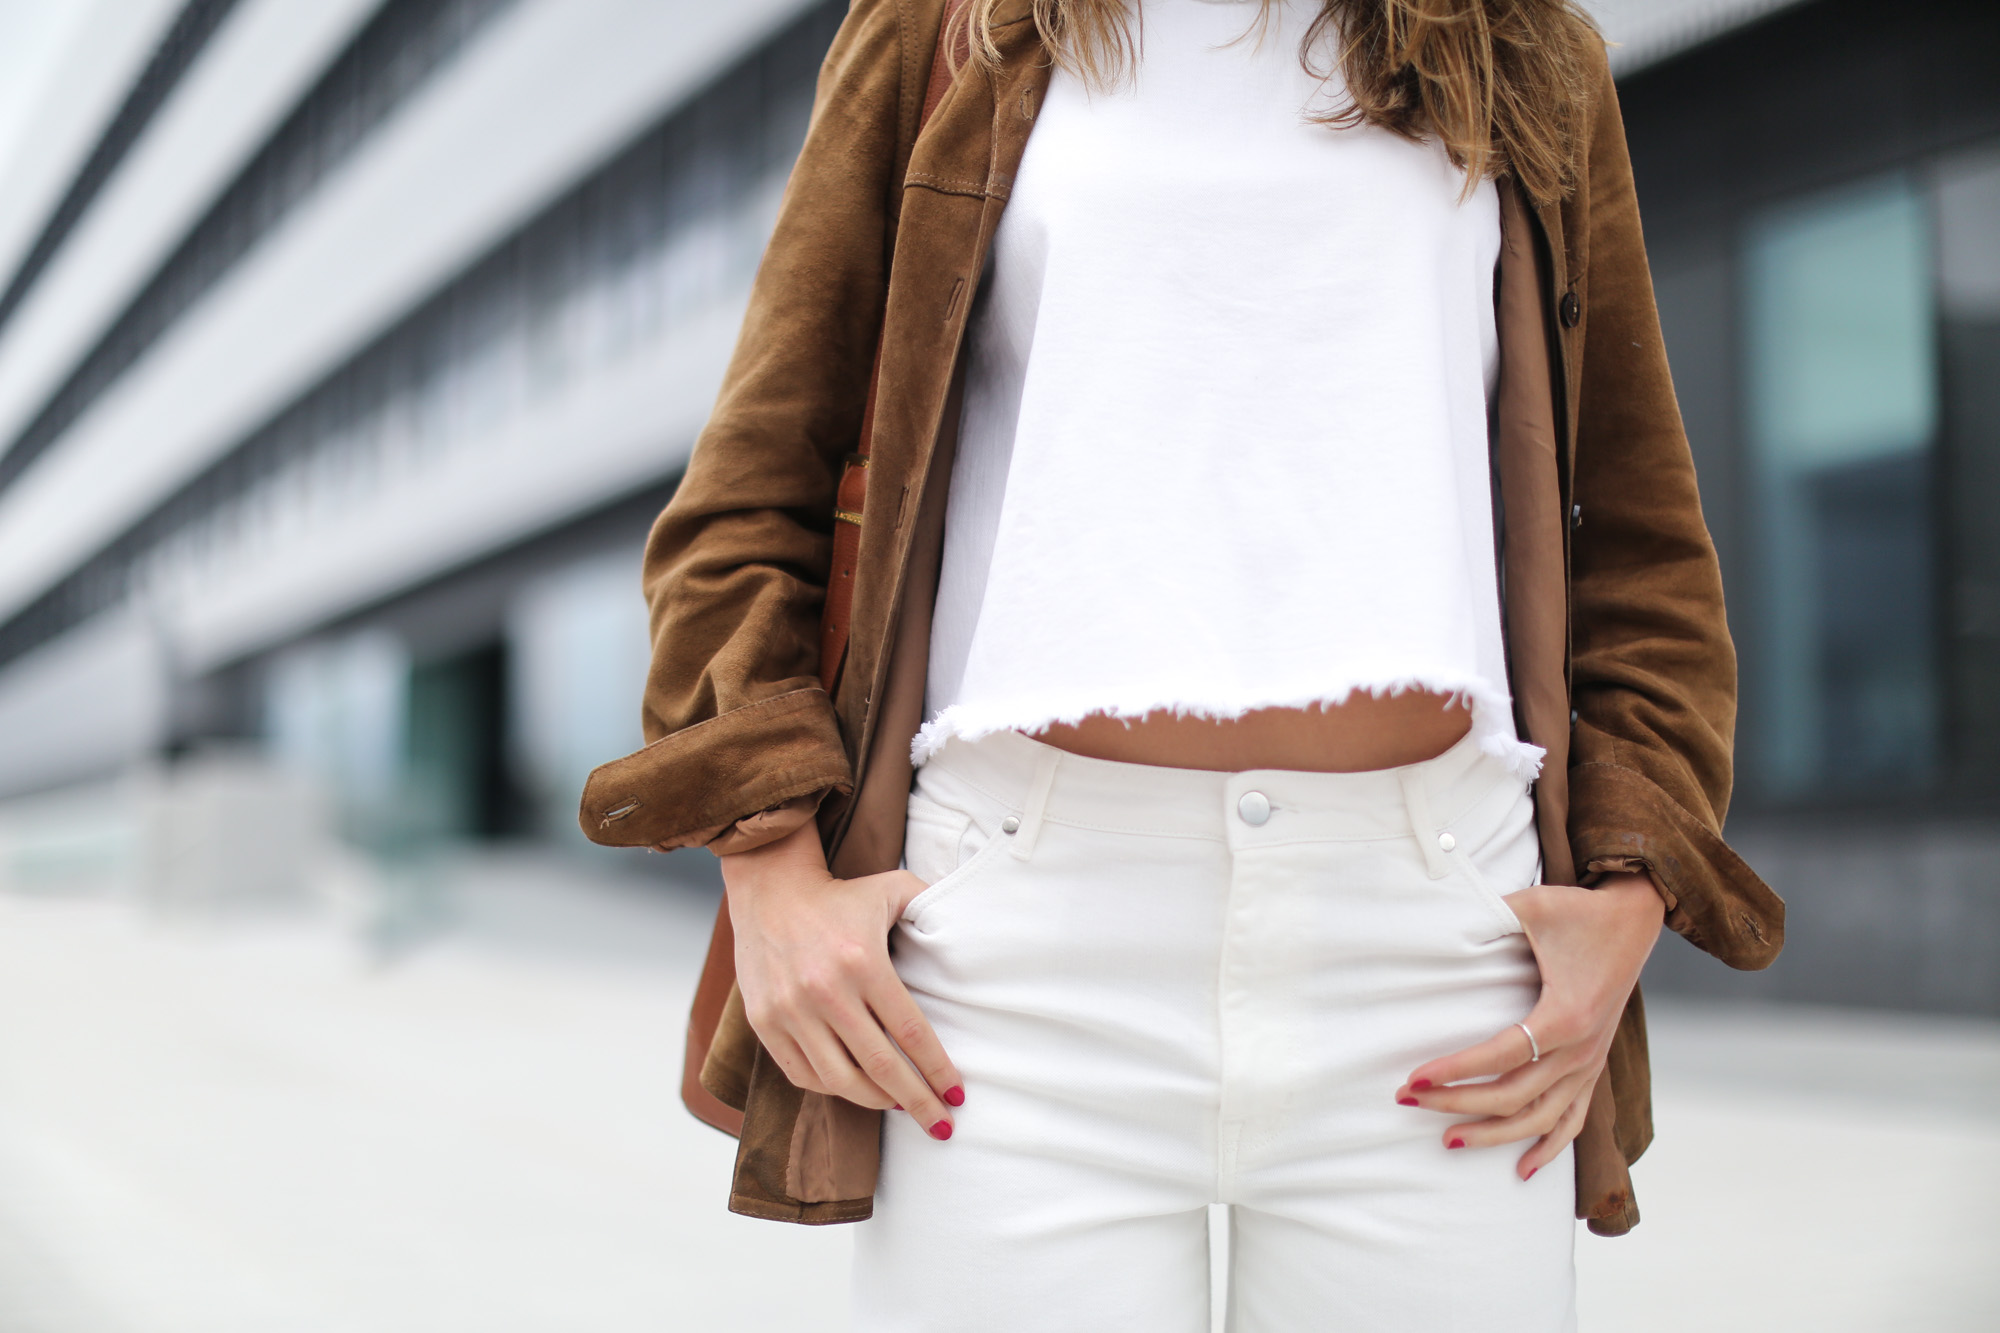 Clochet-streetstyle-white-cropped-jeans-vintage-suede-jacket-bucket-bag-4